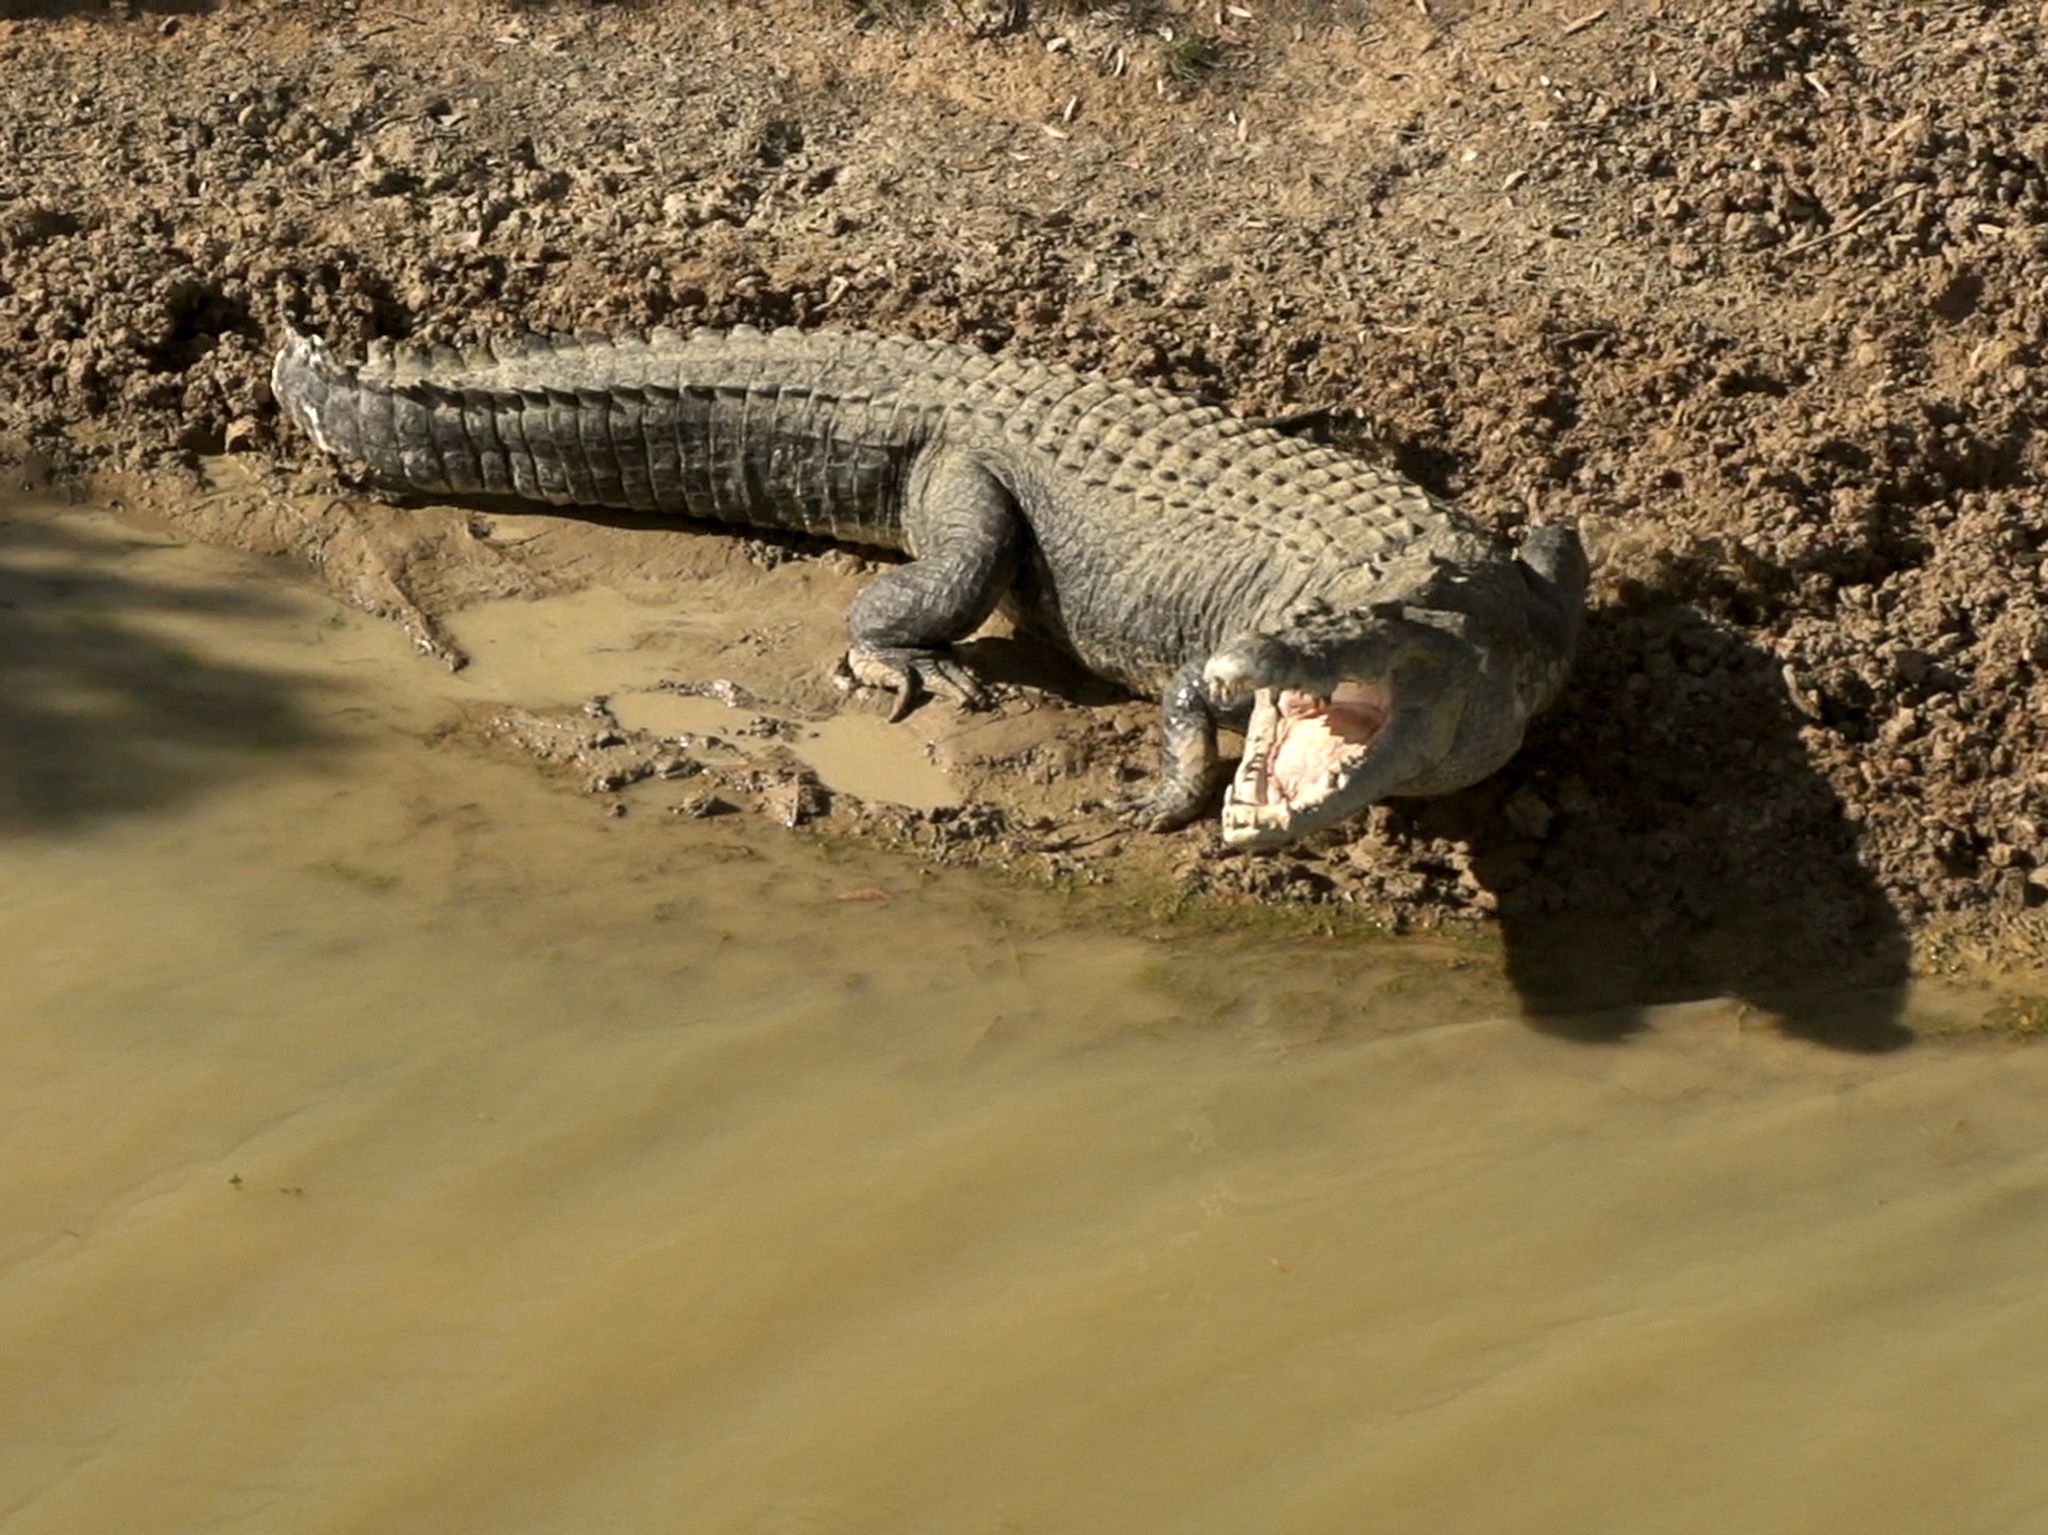 Northern Territory, Australia:  A croc shows its teeth. This image is from Monster Croc Wrangler. [Photo of the day - November 2019]